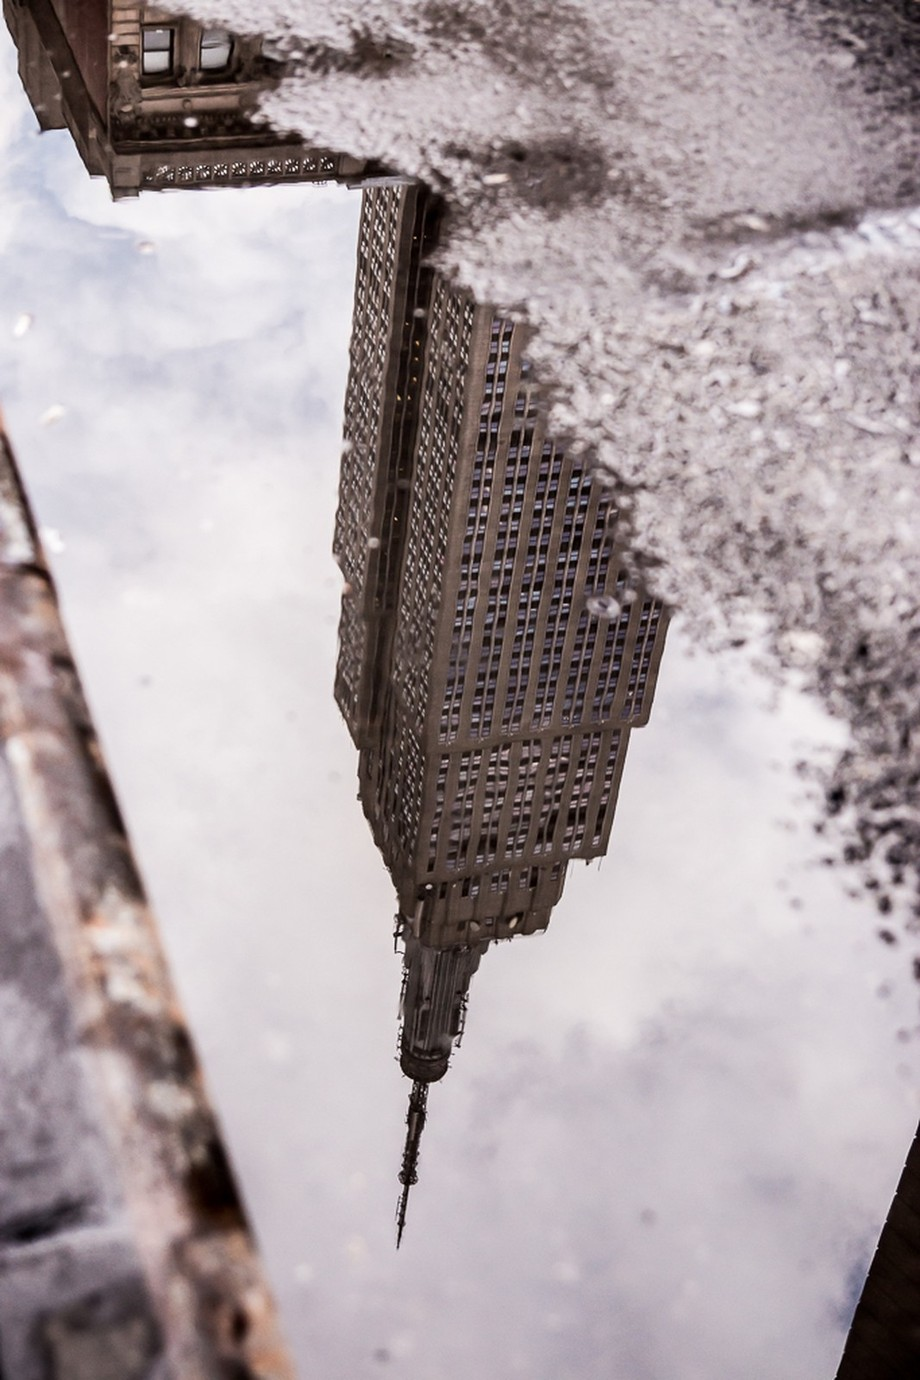 The Empire State Building reflected in a pool of melted snow. by MikaJC - New York Photo Contest